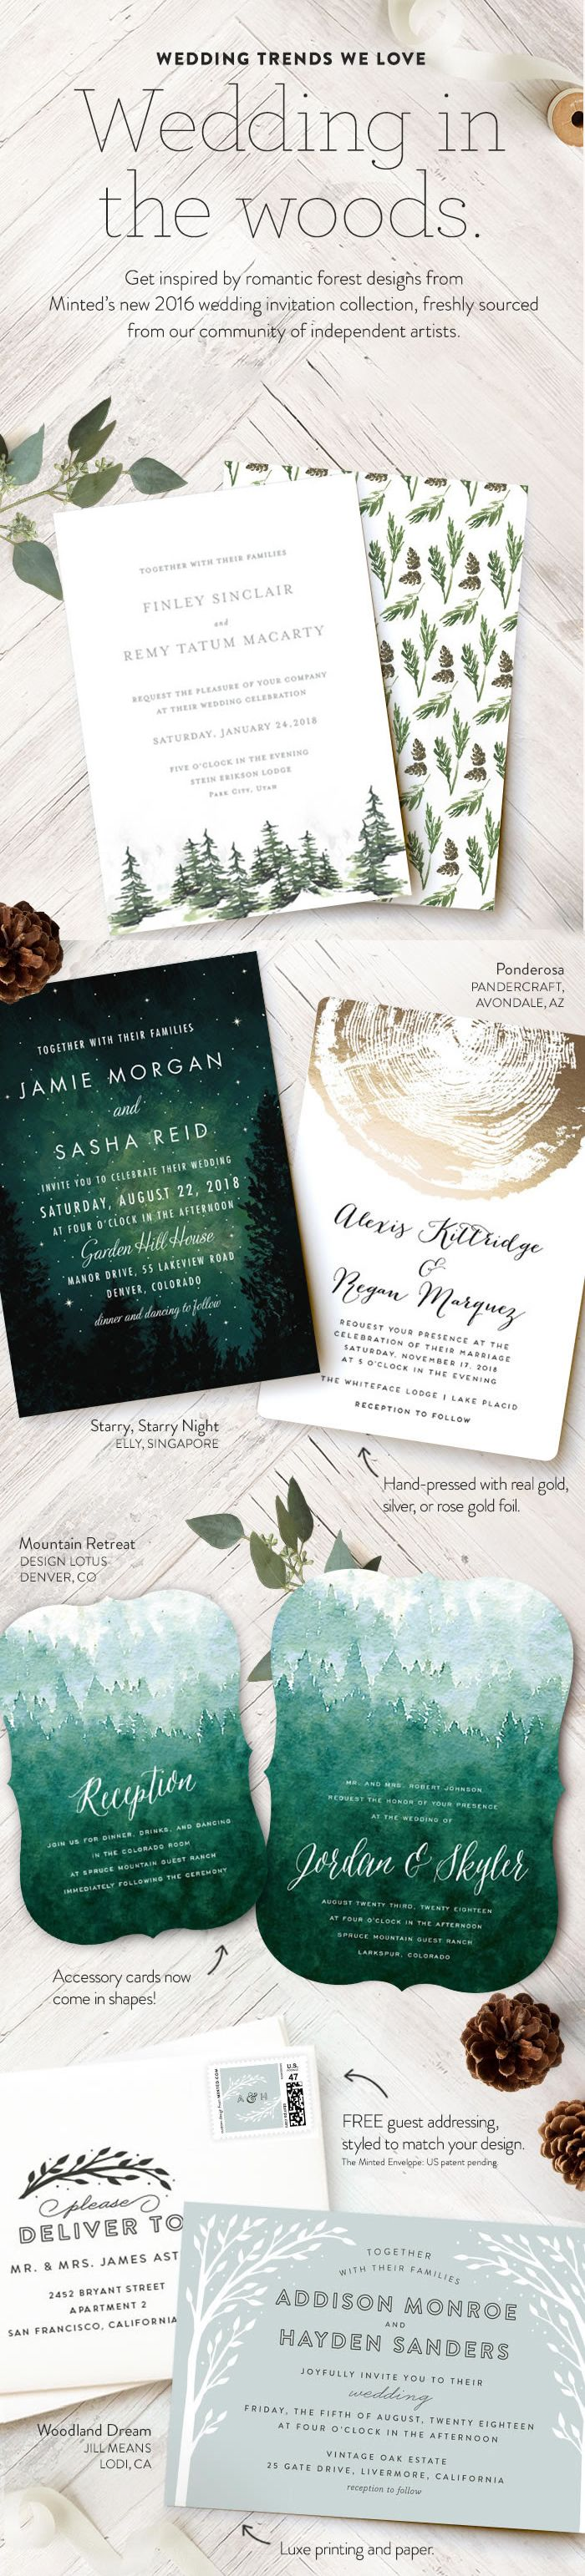 Get inspired by romantic forest wedding invitations designs from our